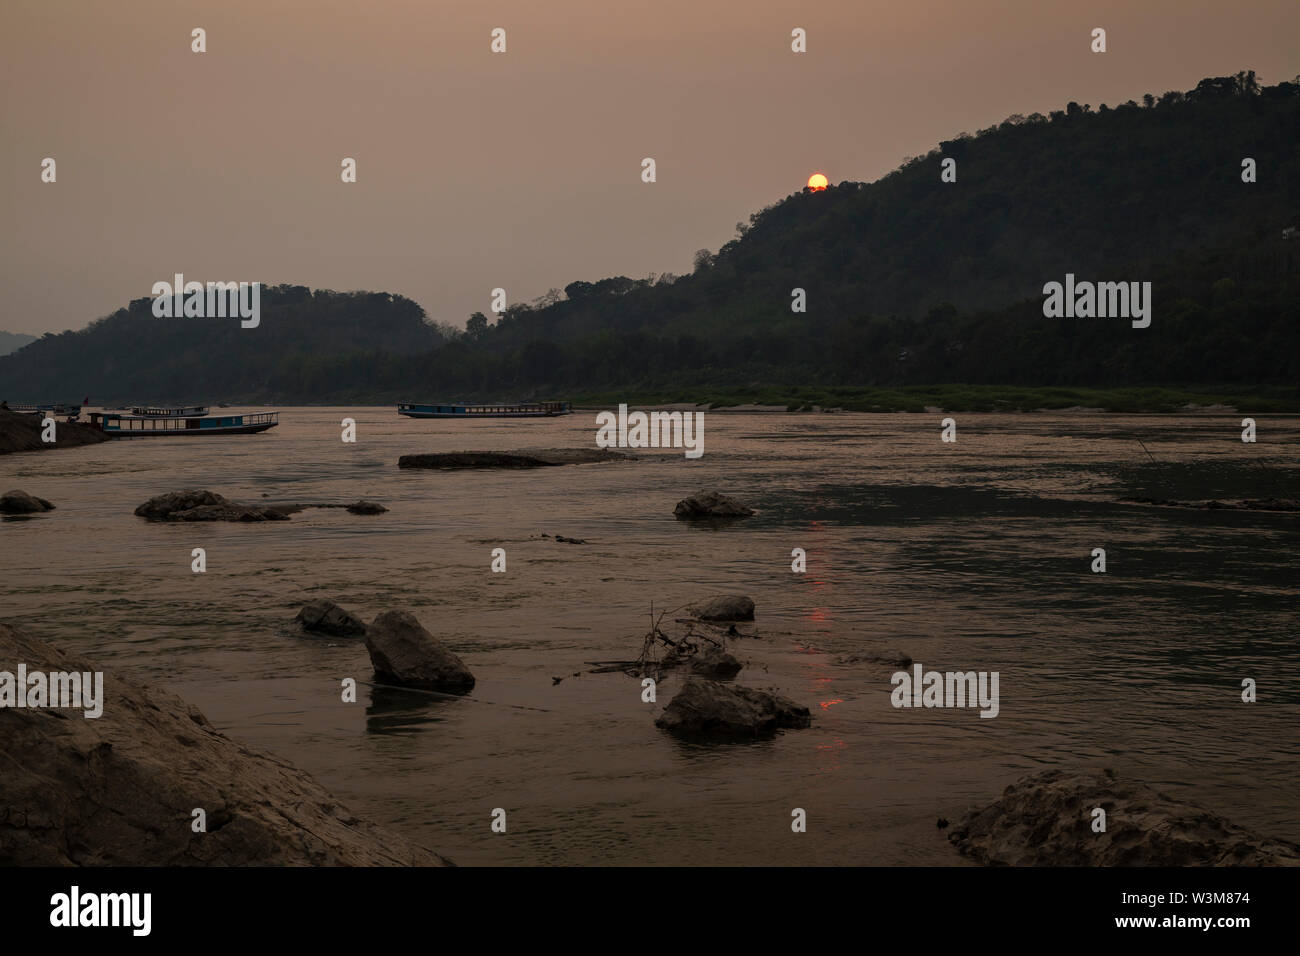 View of few river cruise ships on the Mekong River and Chomphet District across the river in Luang Prabang, Laos, at sunset. Stock Photo